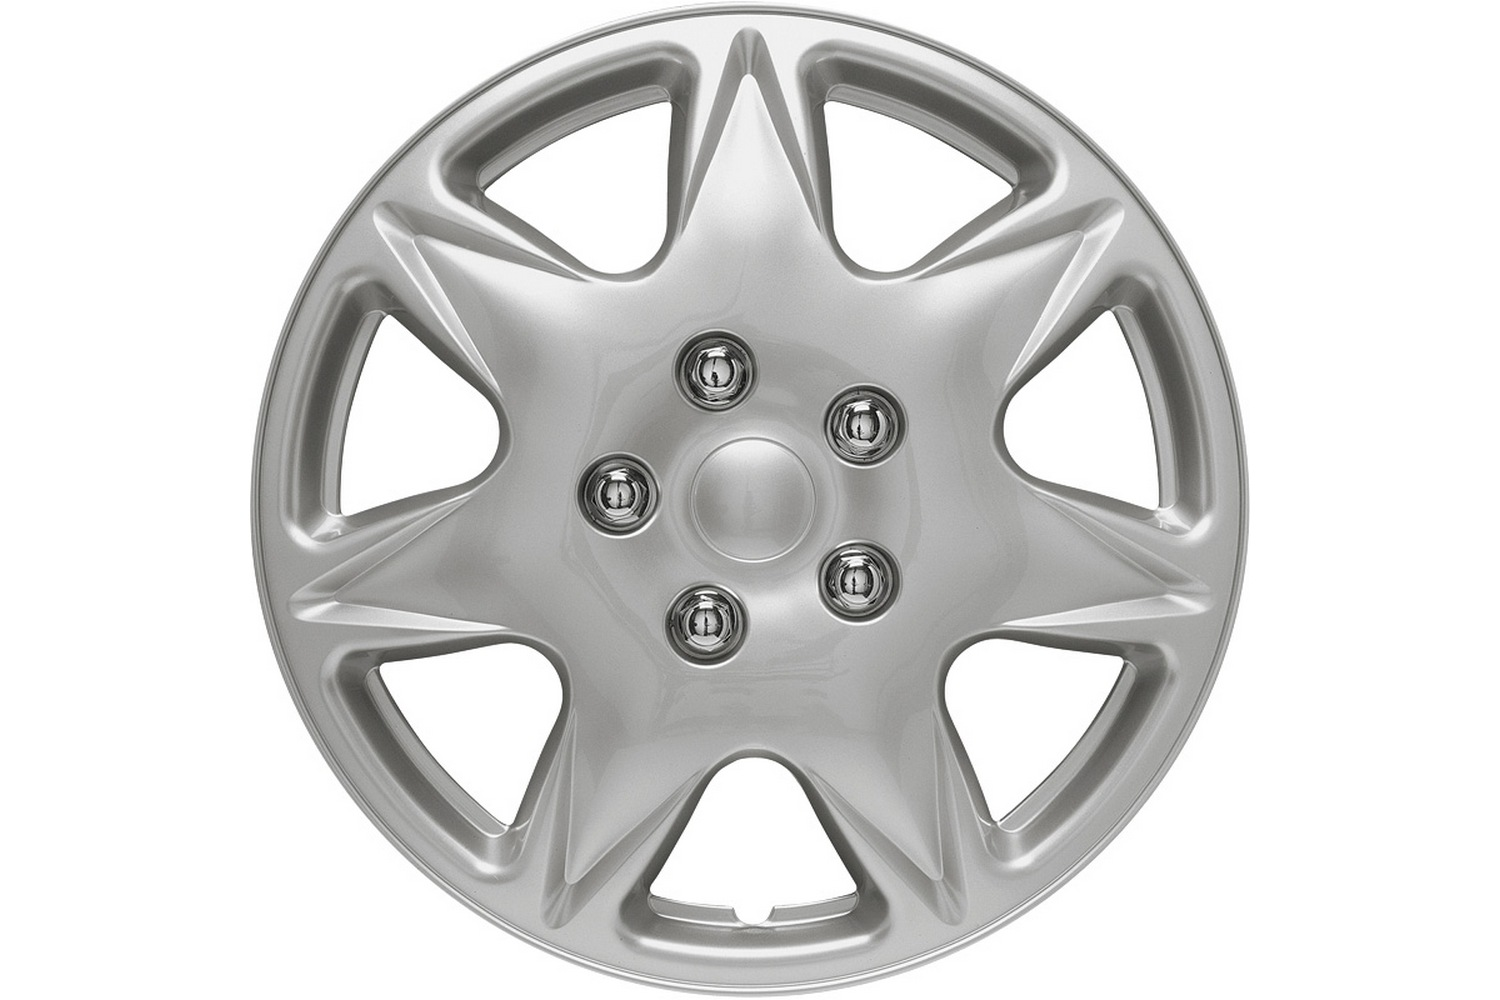 Wheel covers California 16 inch set 4 pieces